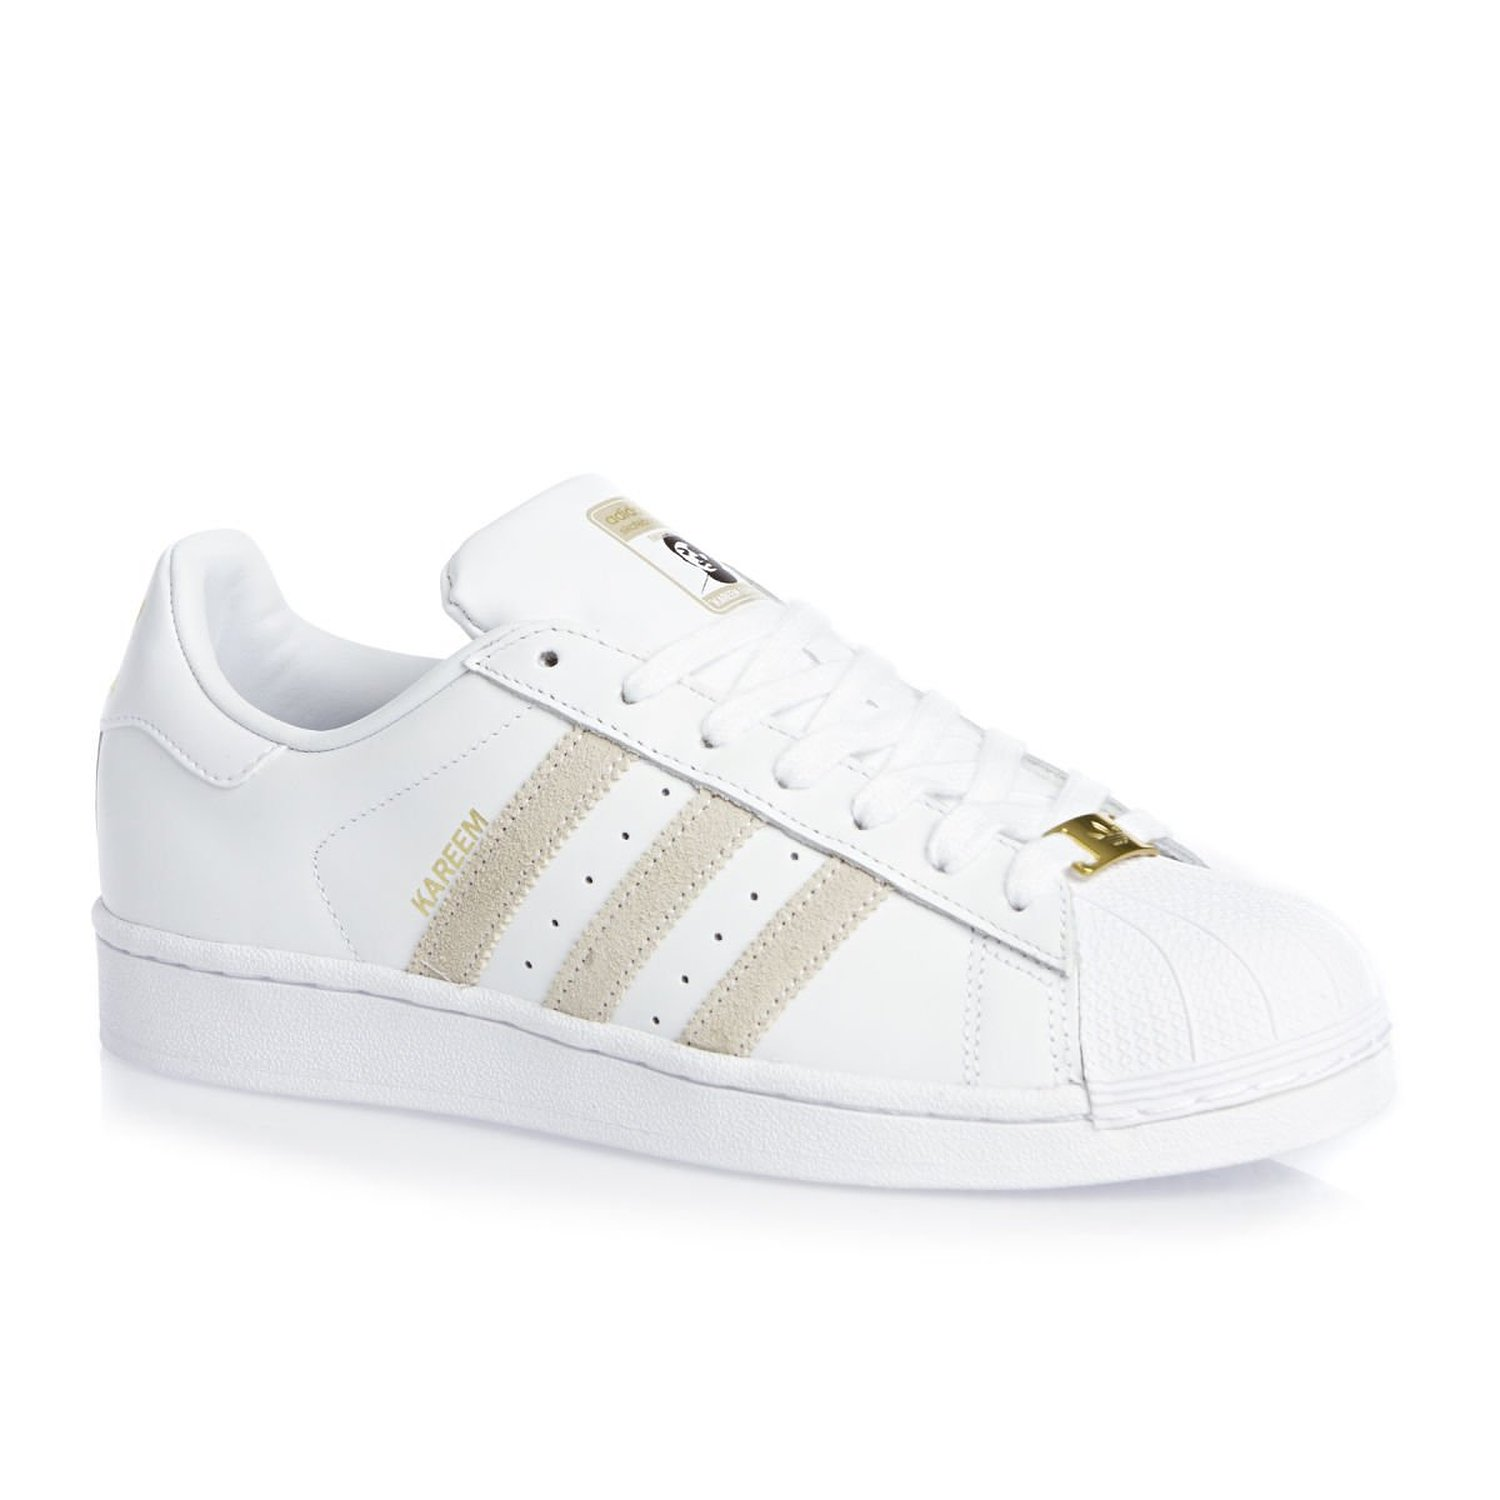 check out 59abe b256f Adidas Superstar RT, white, 11, 5 Amazon.co.uk Shoes  Bags